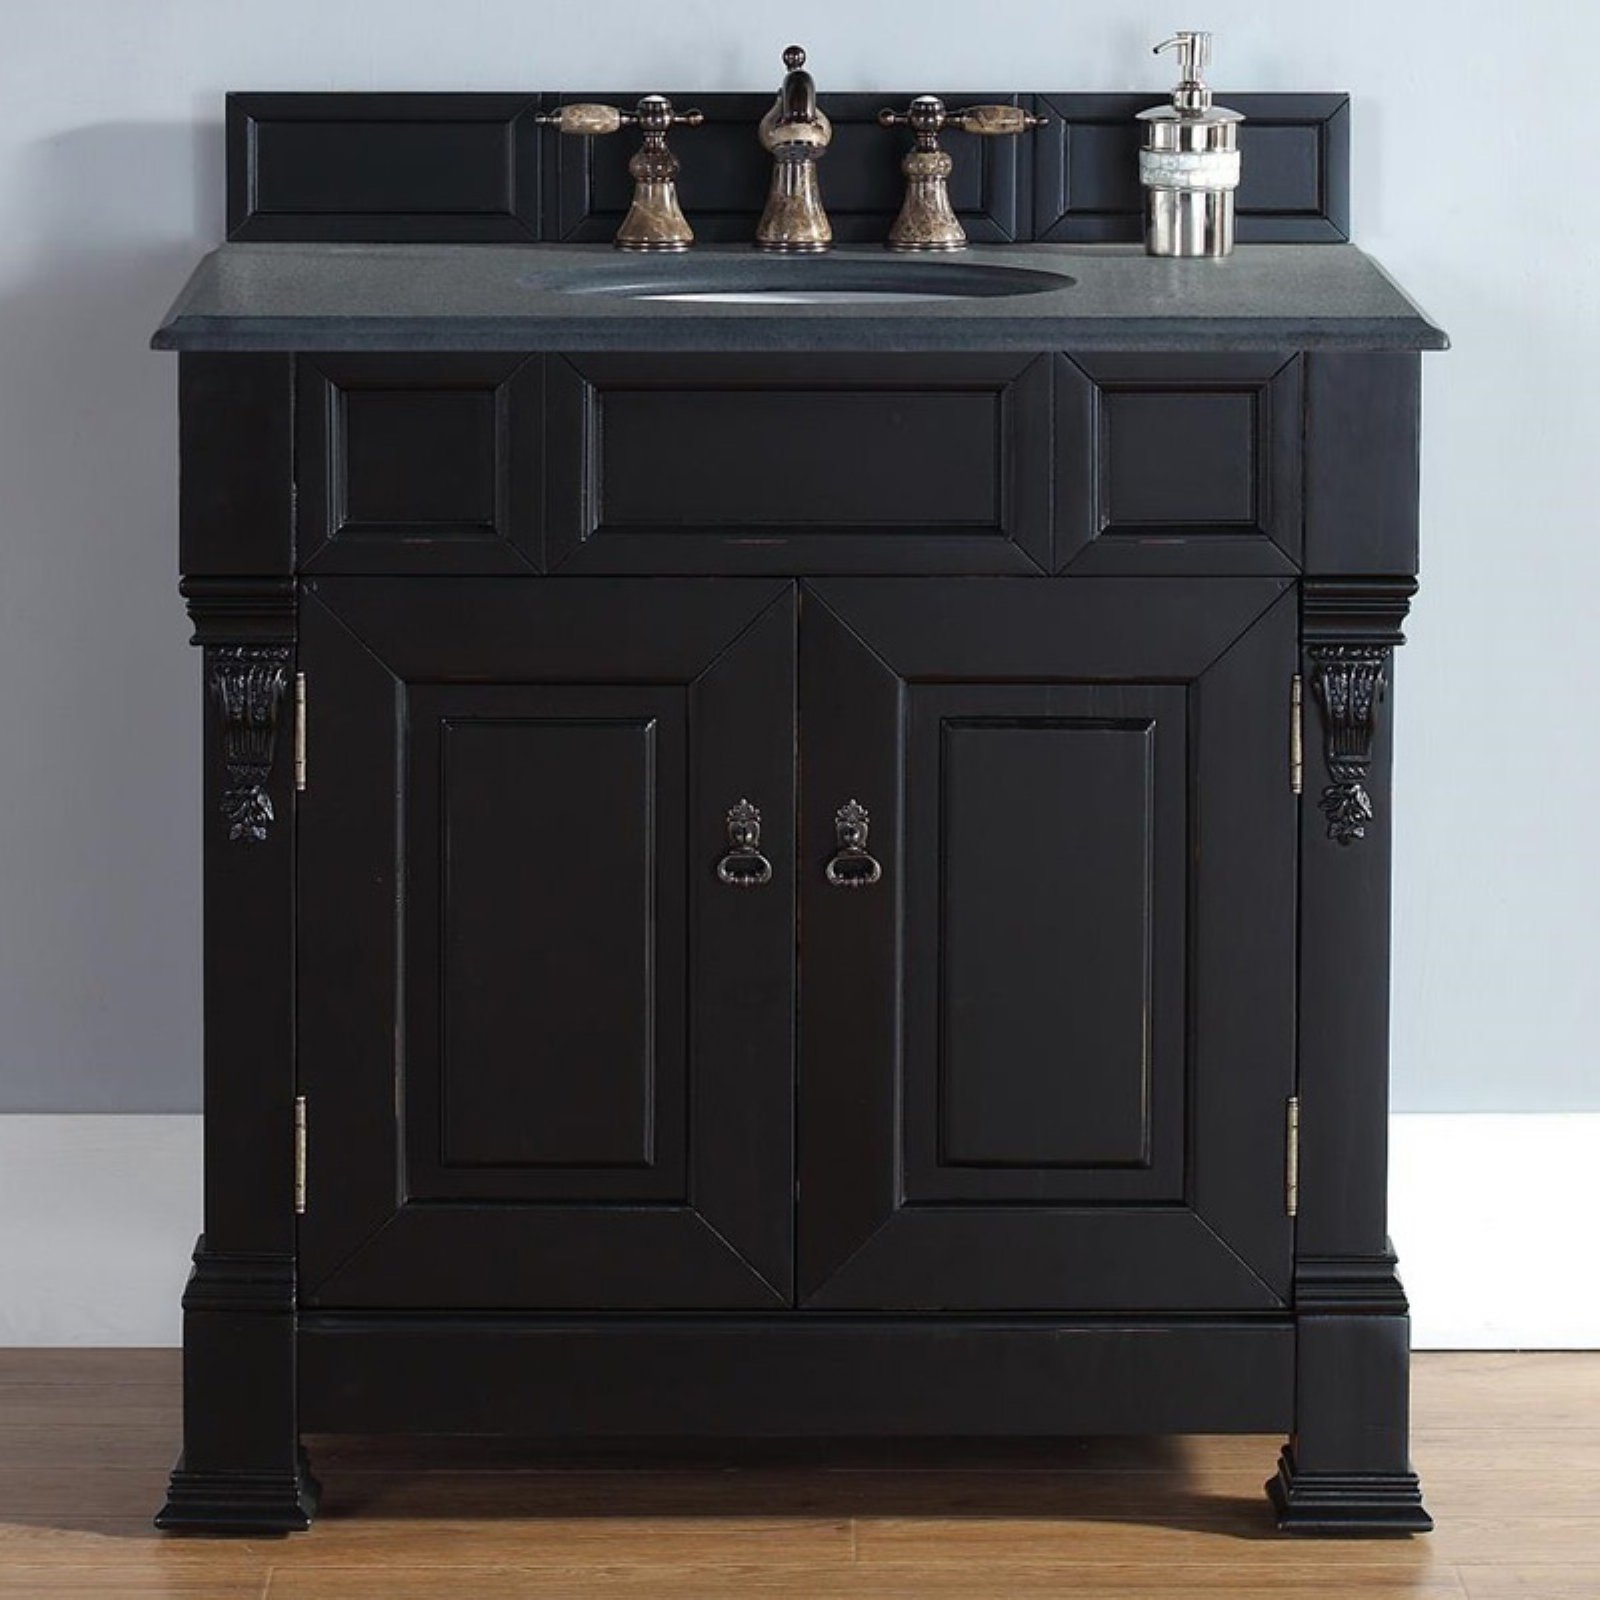 James Martin Brookfield 36 in. Single Bathroom Vanity